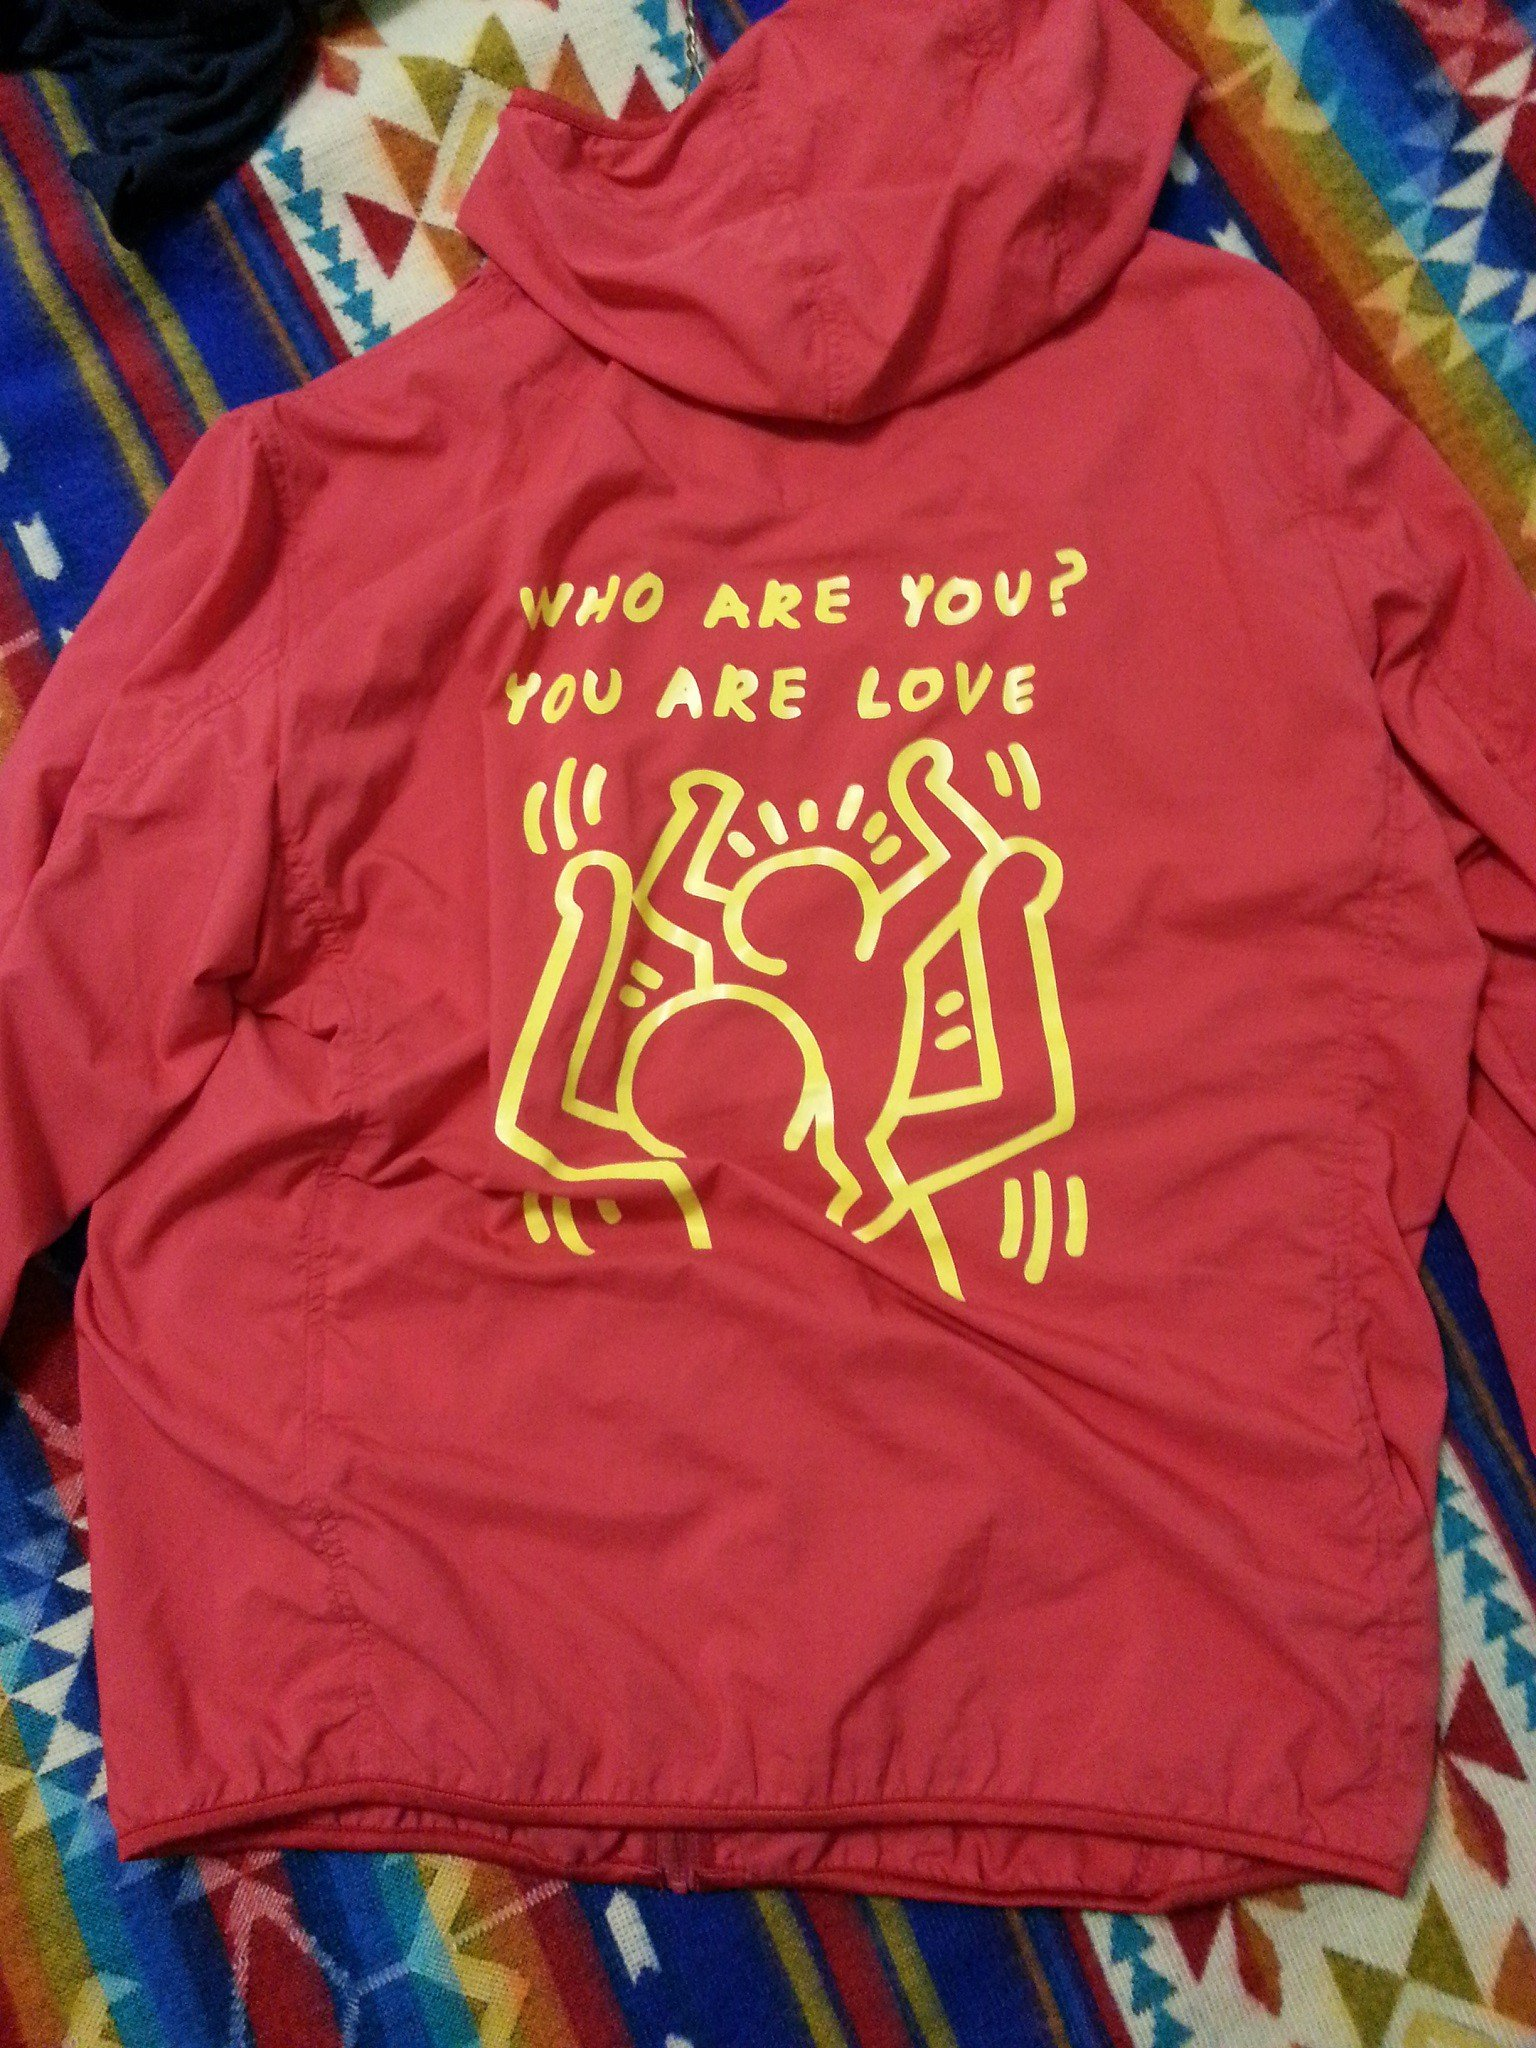 We're big Keith Haring fans. I love the vibrancy of this jacket's message and graphics.